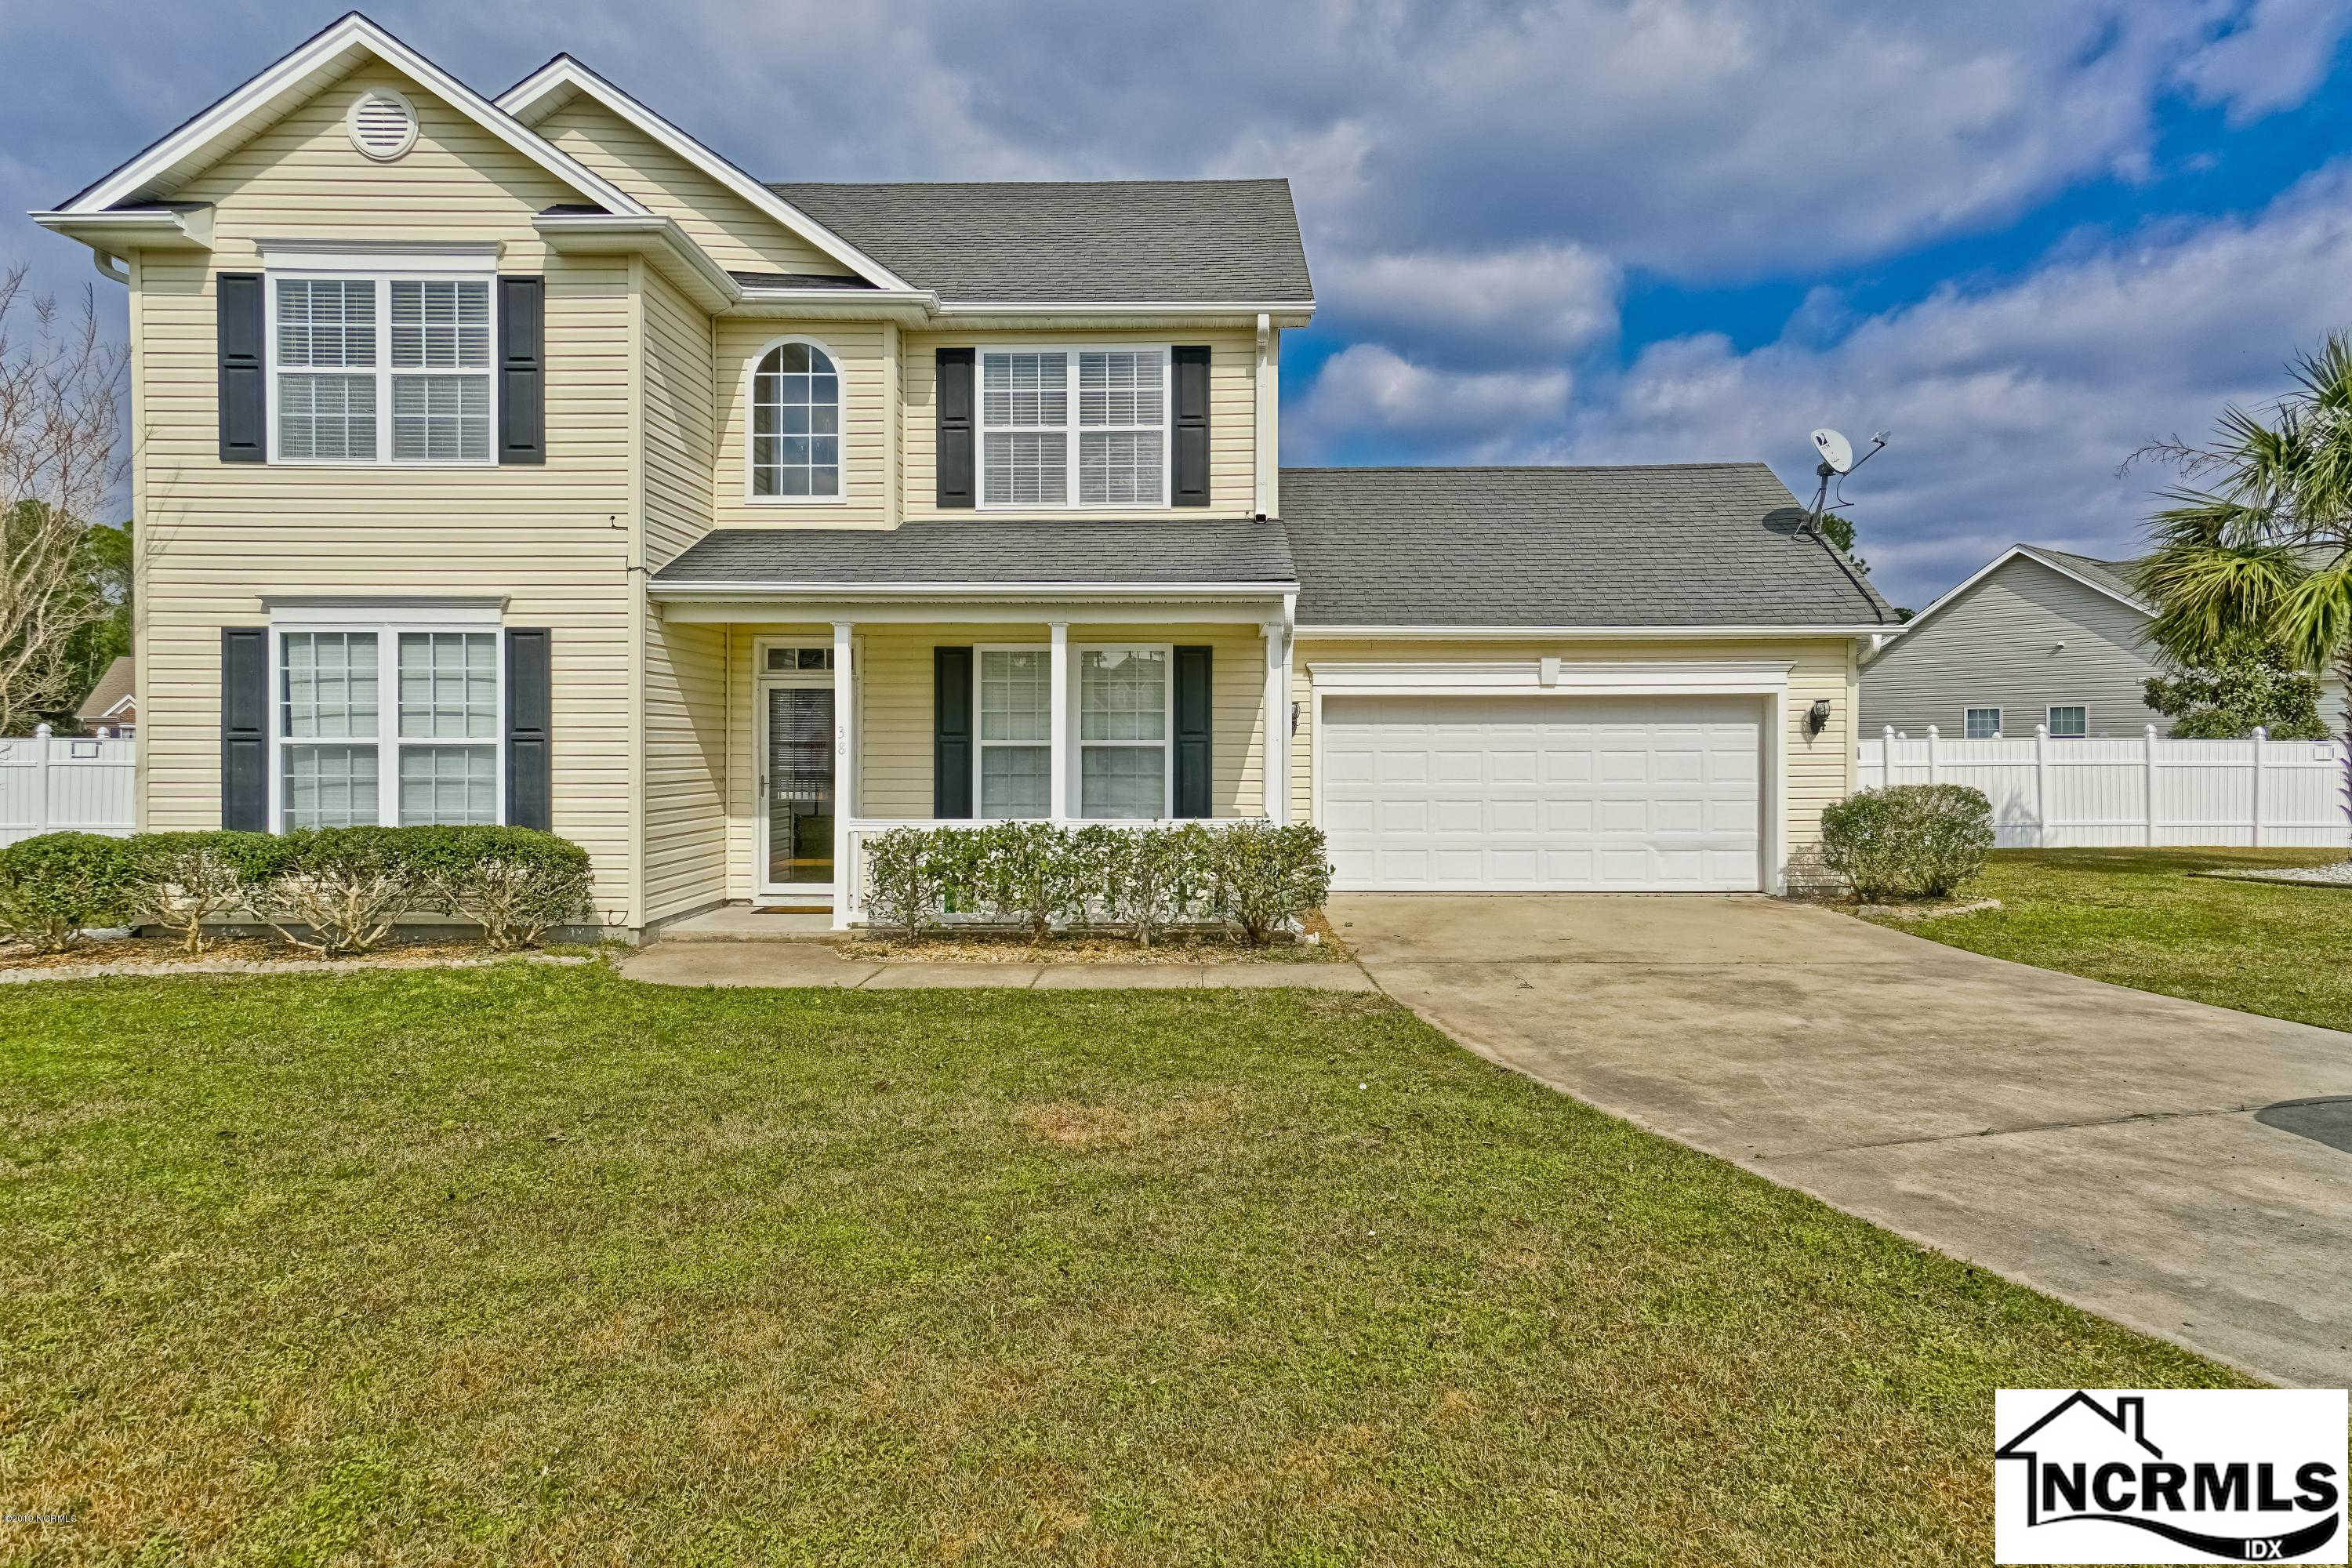 38 Hawick Drive, Shallotte, NC 28470 now has a new price of $199,900!